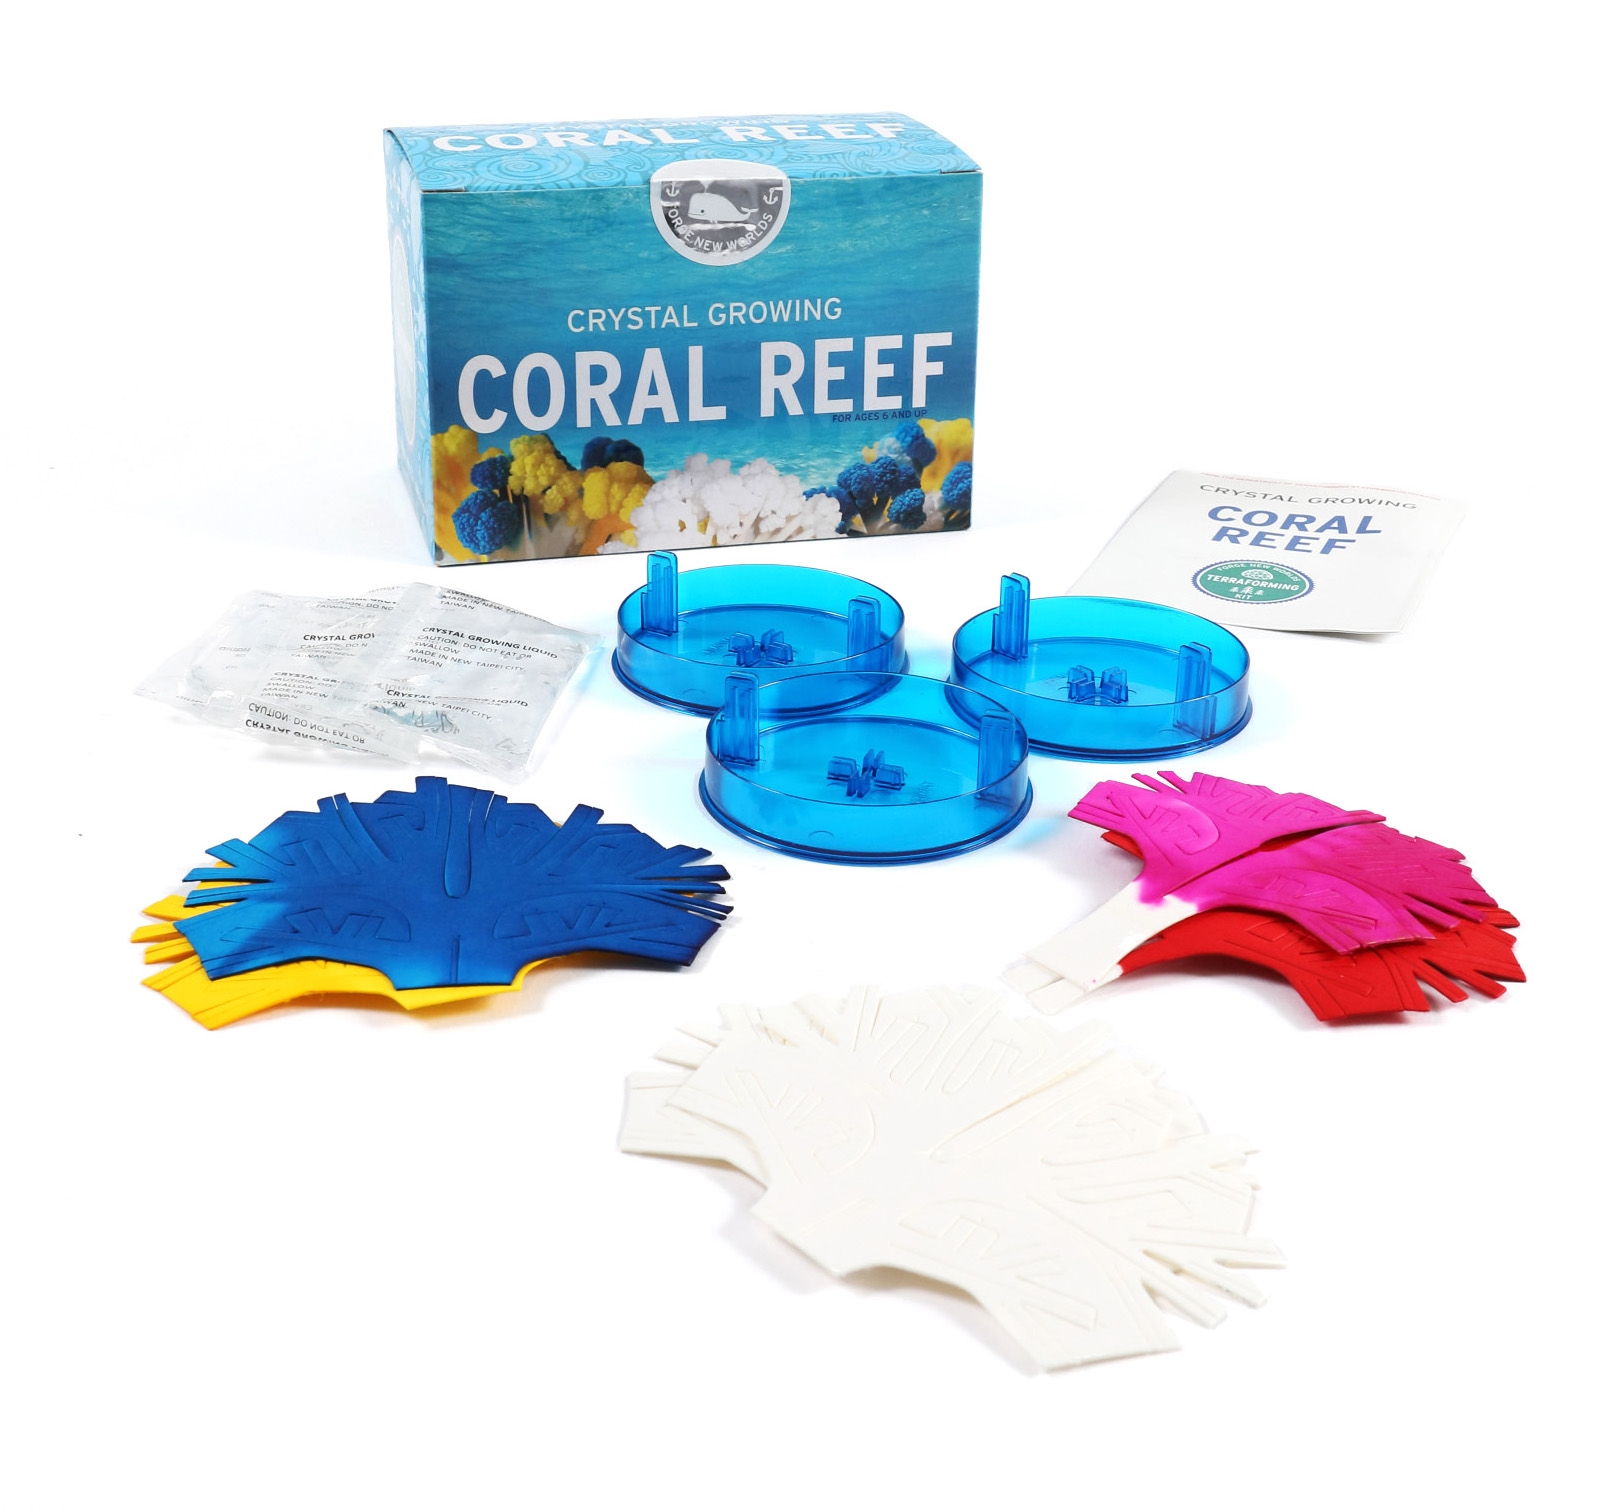 Alternate Coral Reef Kit image 3